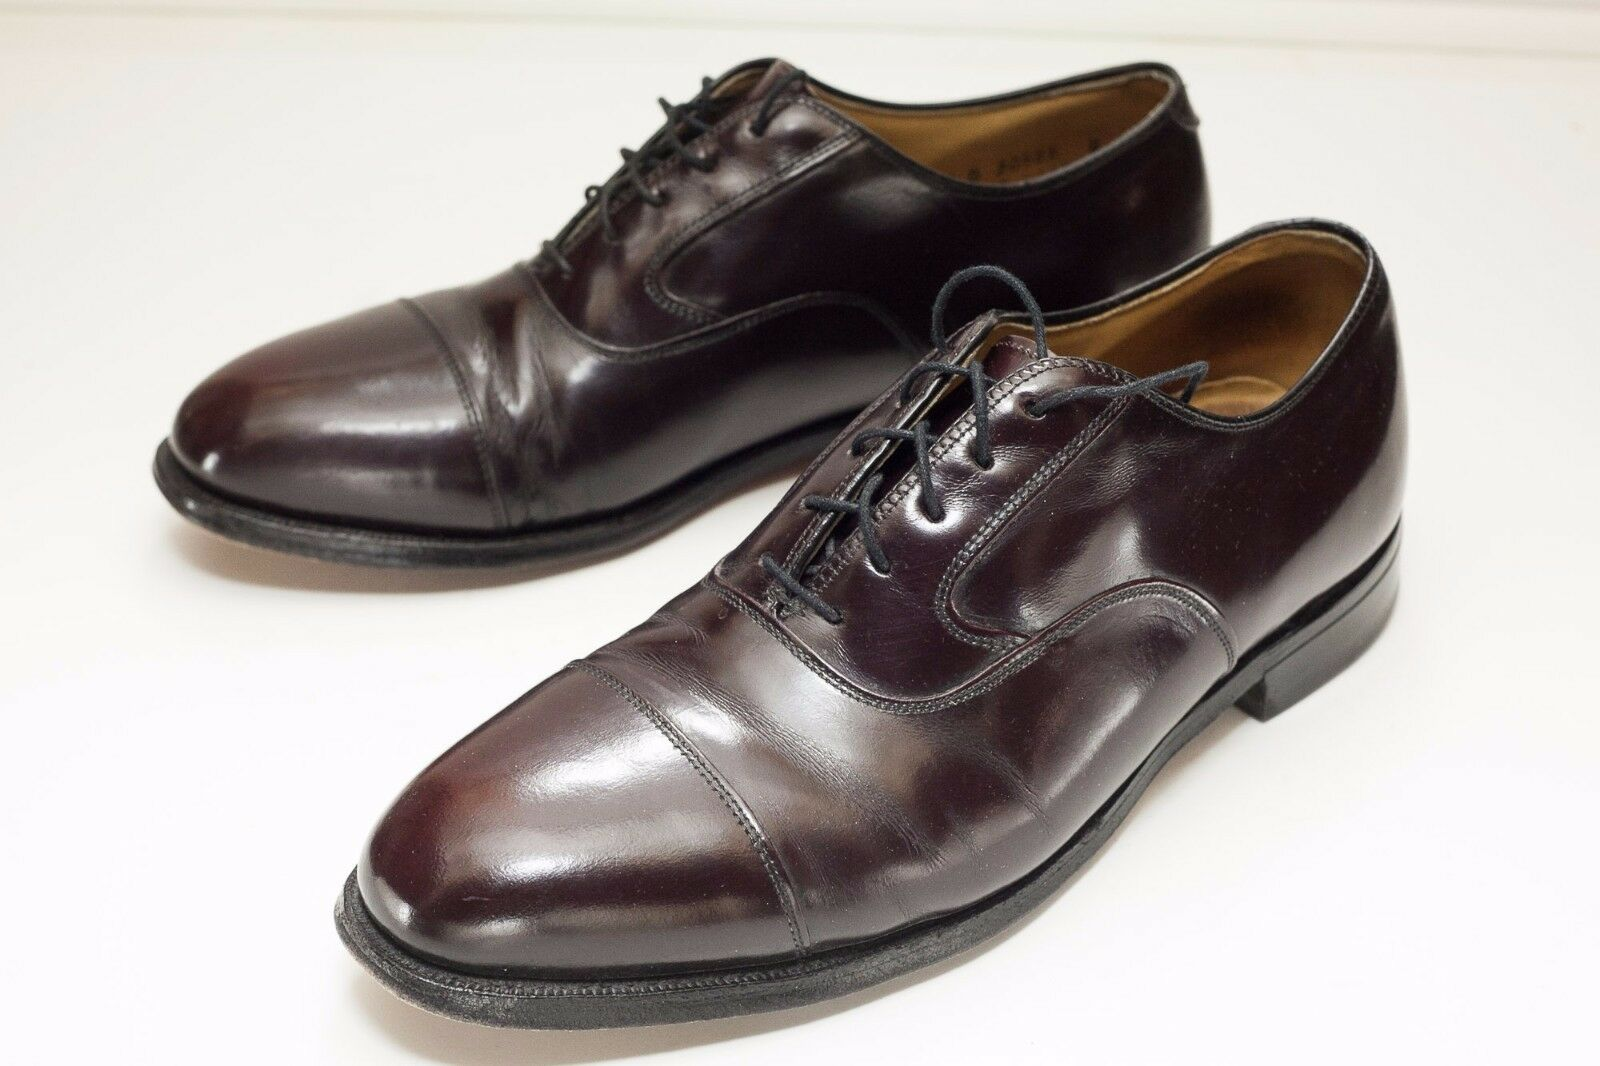 Johnston & Murphy Shoes 8.5 Brown Oxford Dress Shoes Murphy c111f6